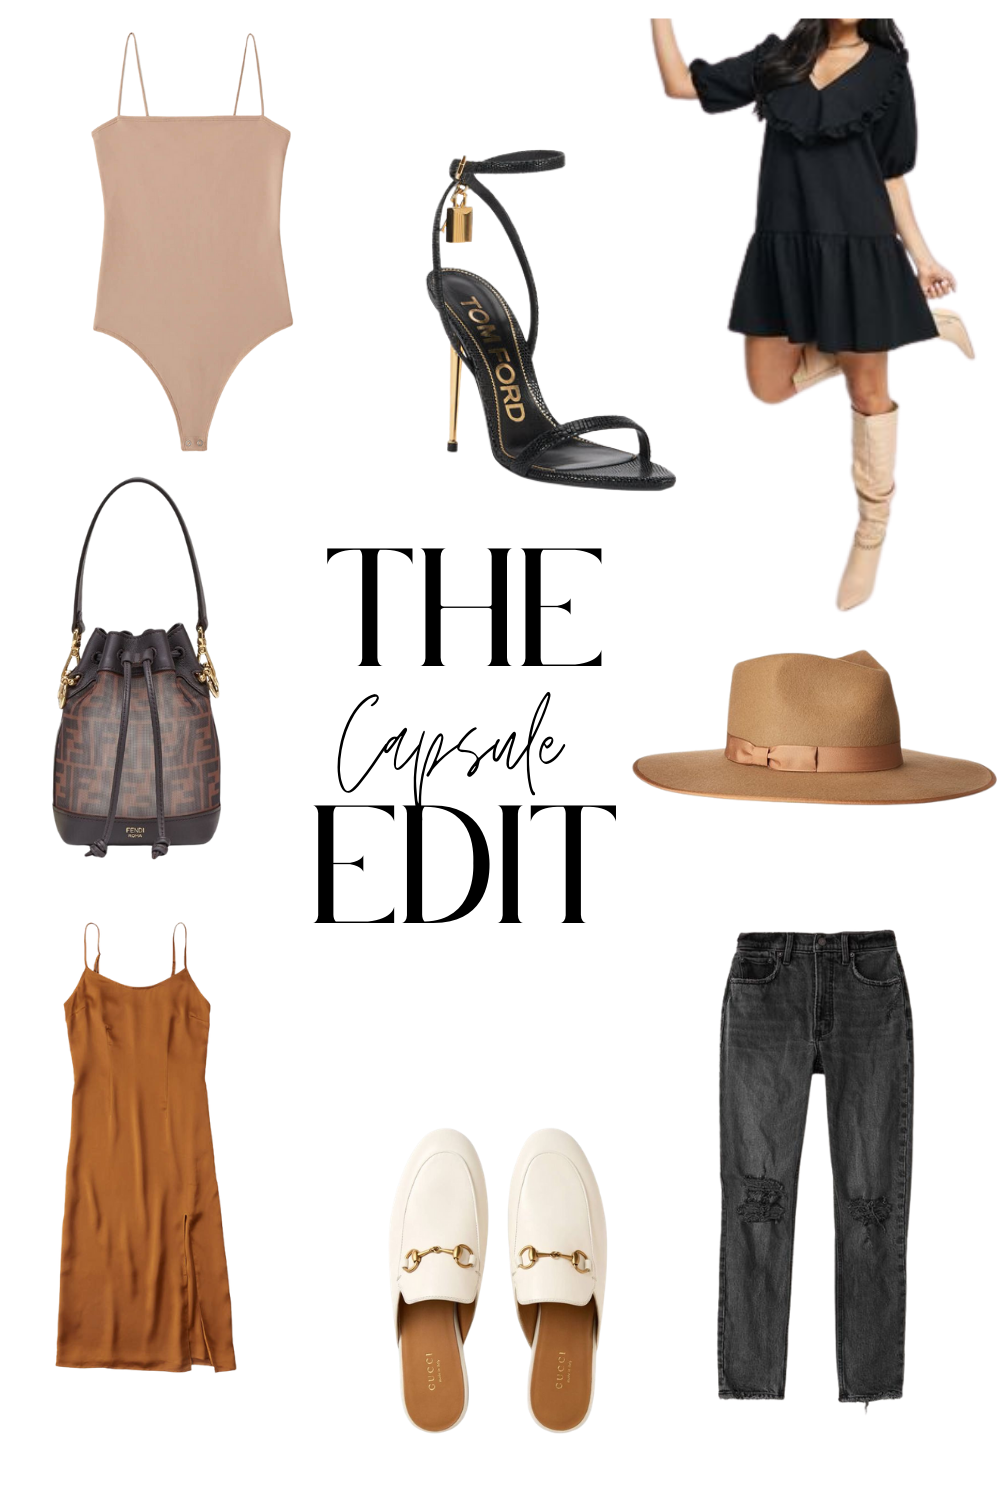 5 Tips for Building a Capsule Wardrobe